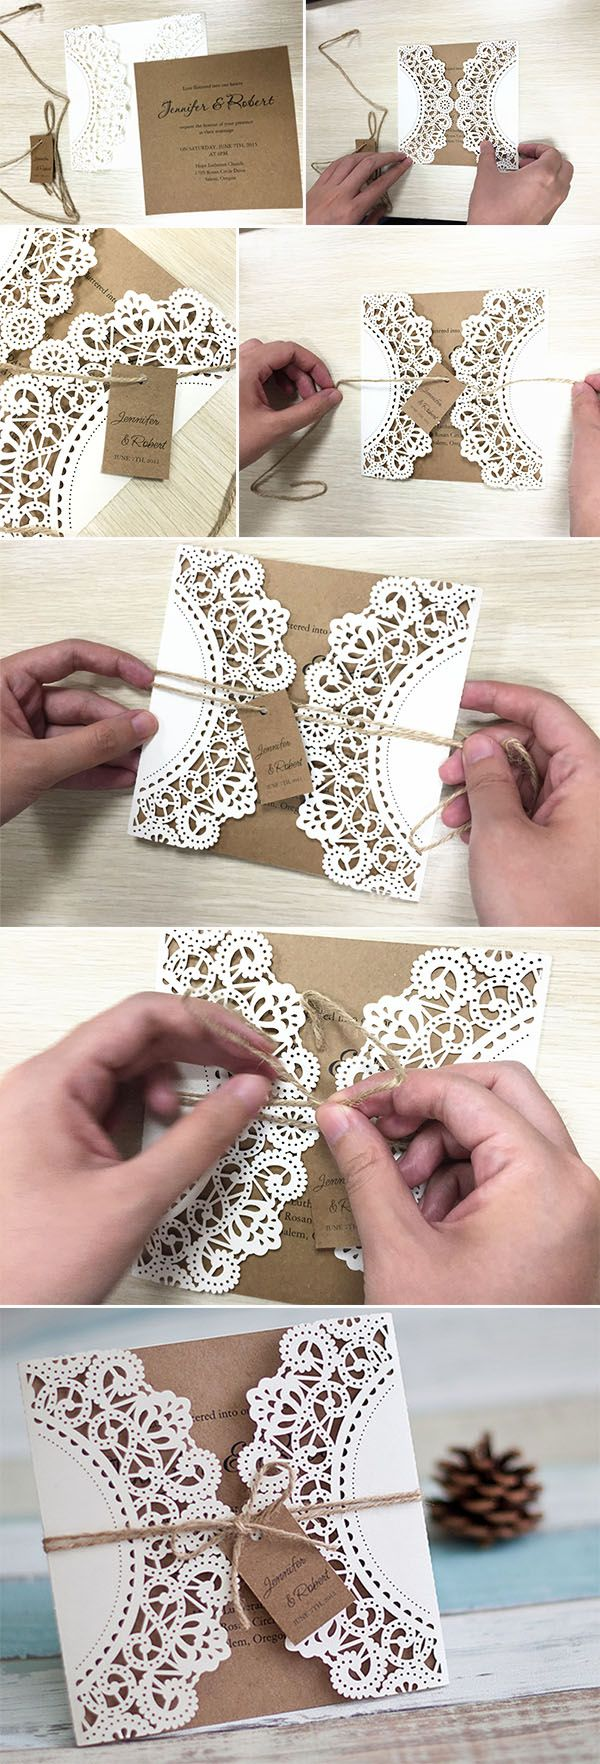 Diy lace and burlap laser cut rustic wedding invitations for country